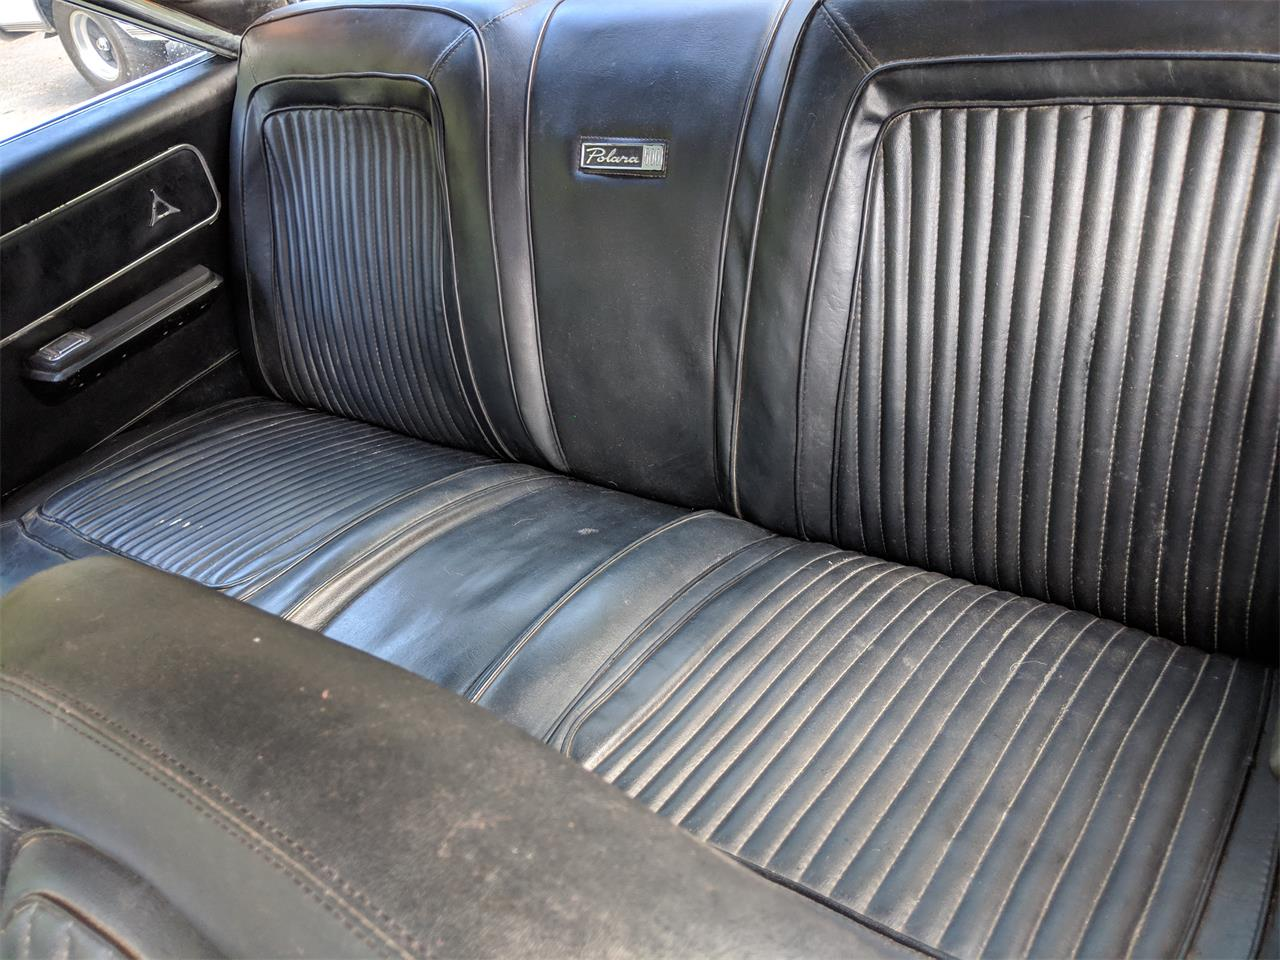 Large Picture of '64 Dodge Polara located in Maryland - $23,000.00 Offered by a Private Seller - Q0ZT